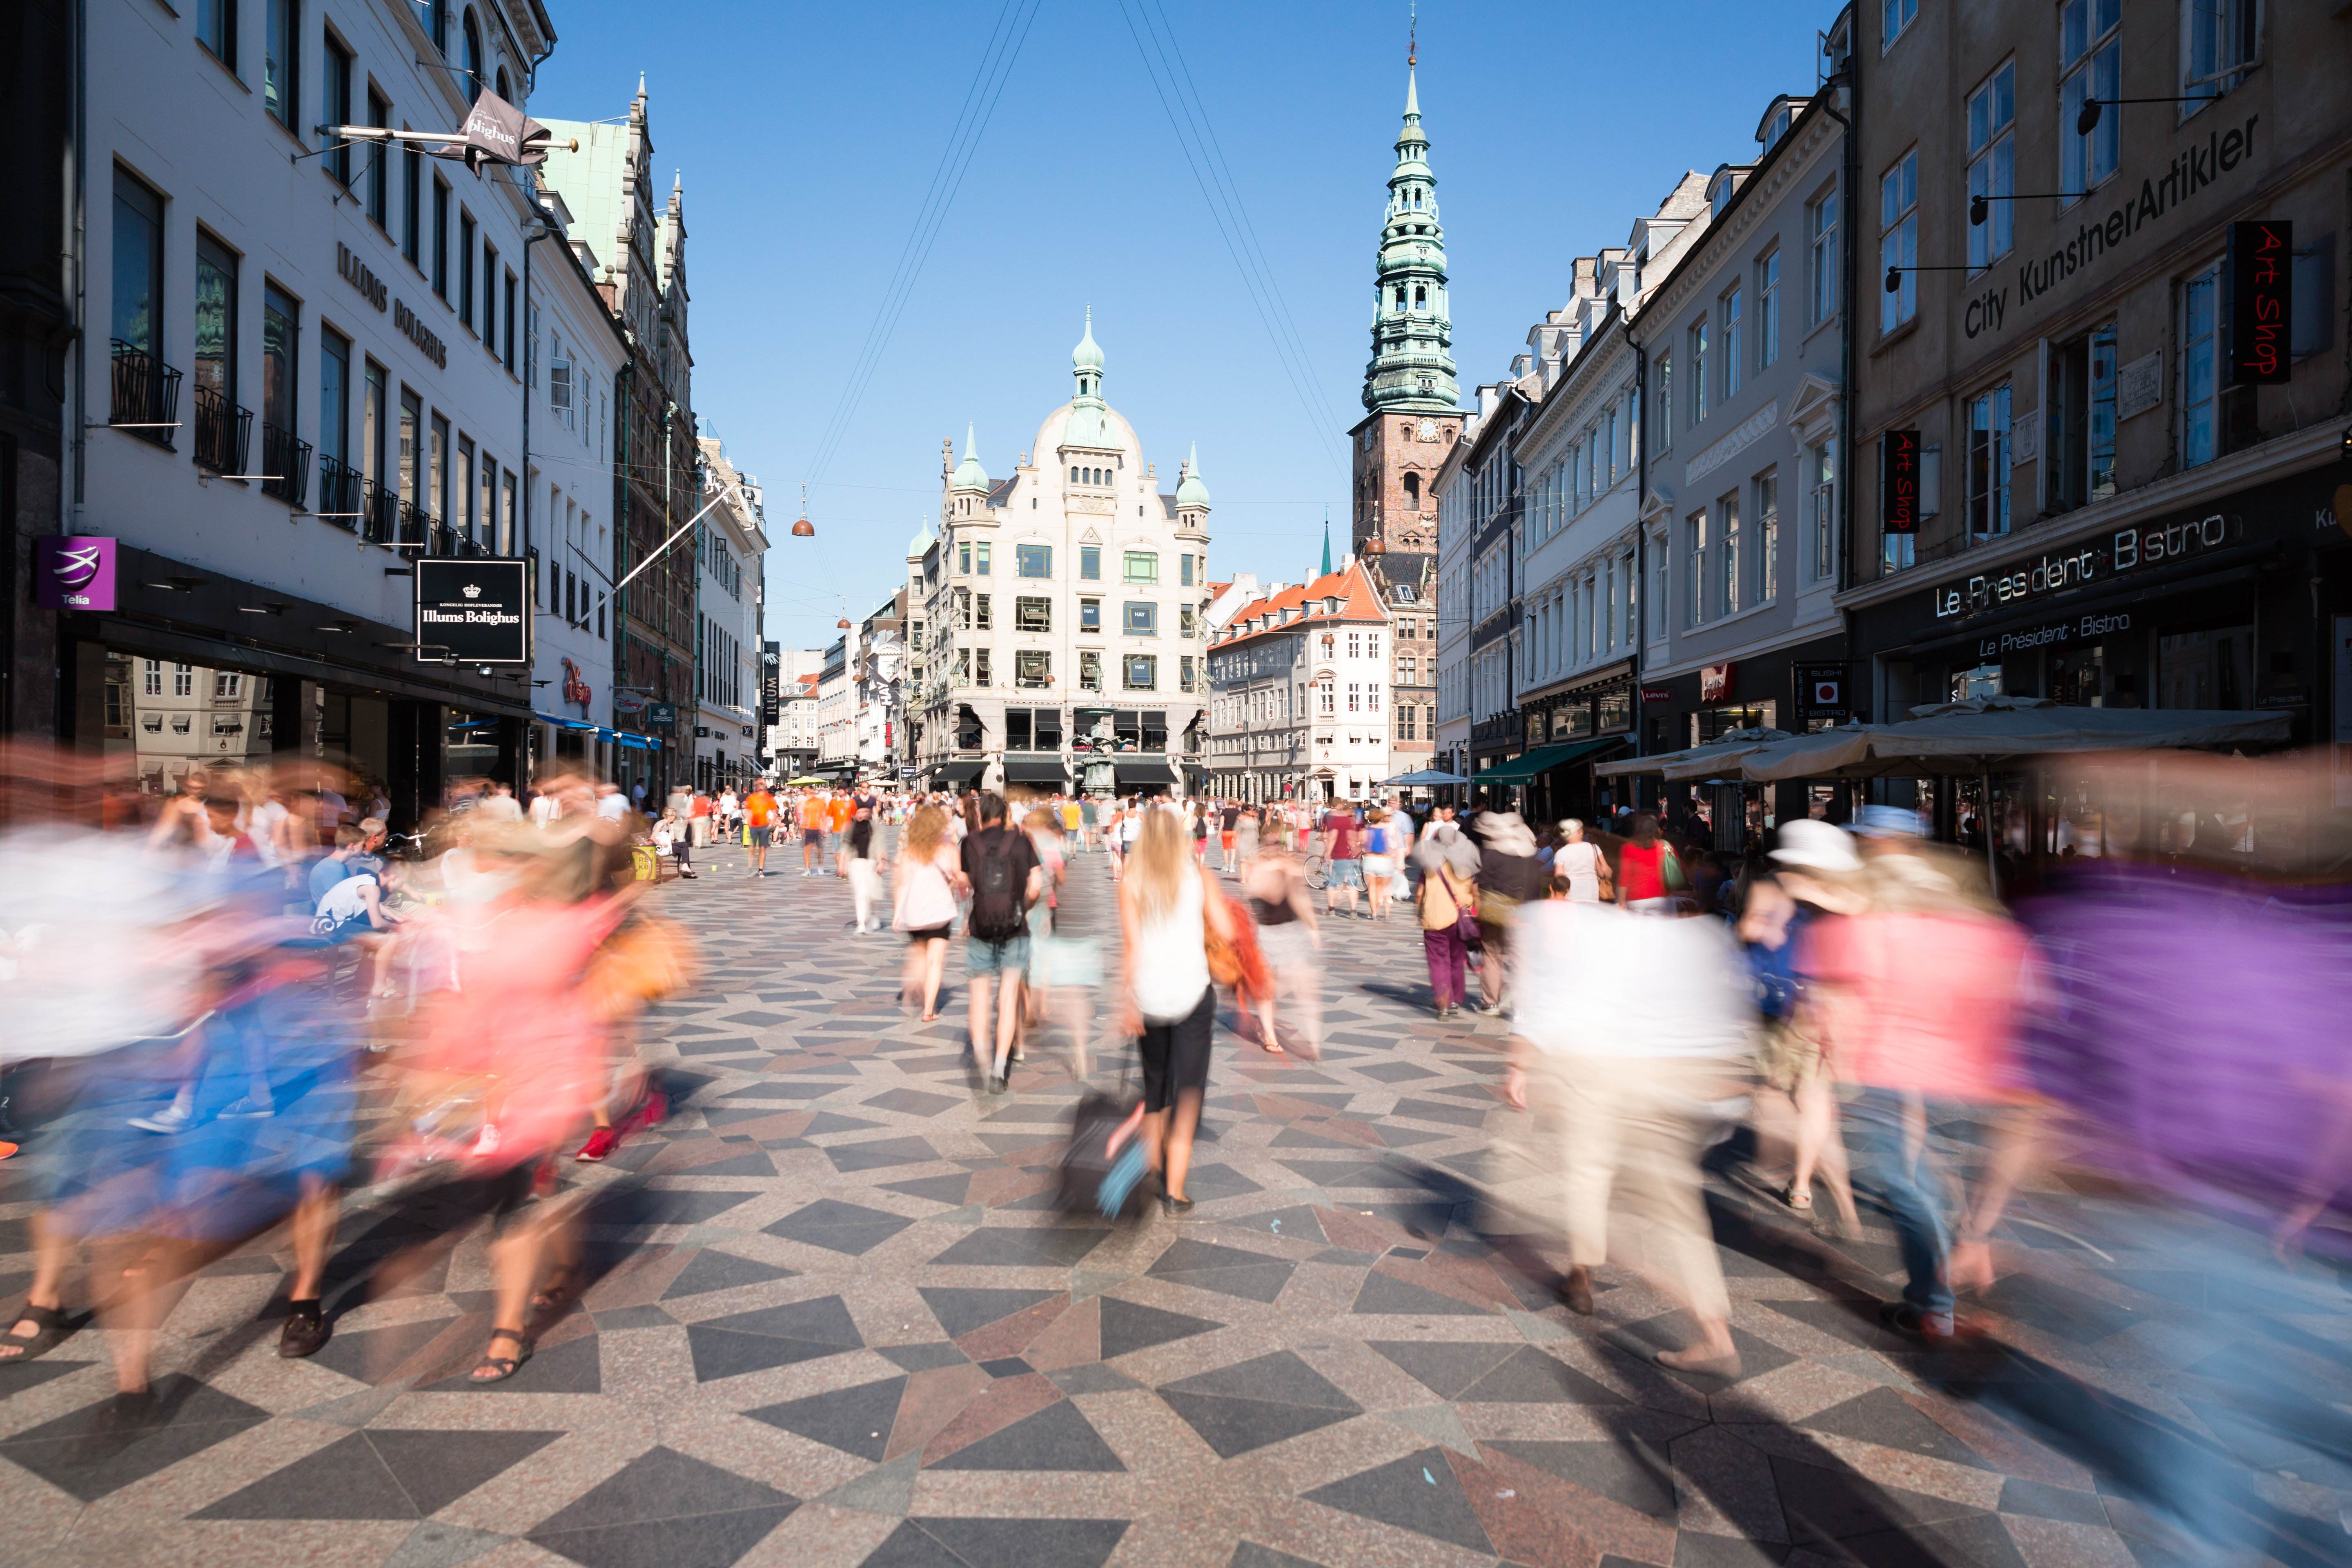 COPENHAGEN, DENMARK - JULY 9, 2014: Tourists and local citizens stroll through the central pedestrian area of the Danish capital of Copenhagen as local restaurants and merchants prepare for the peak tourism season in july and august.